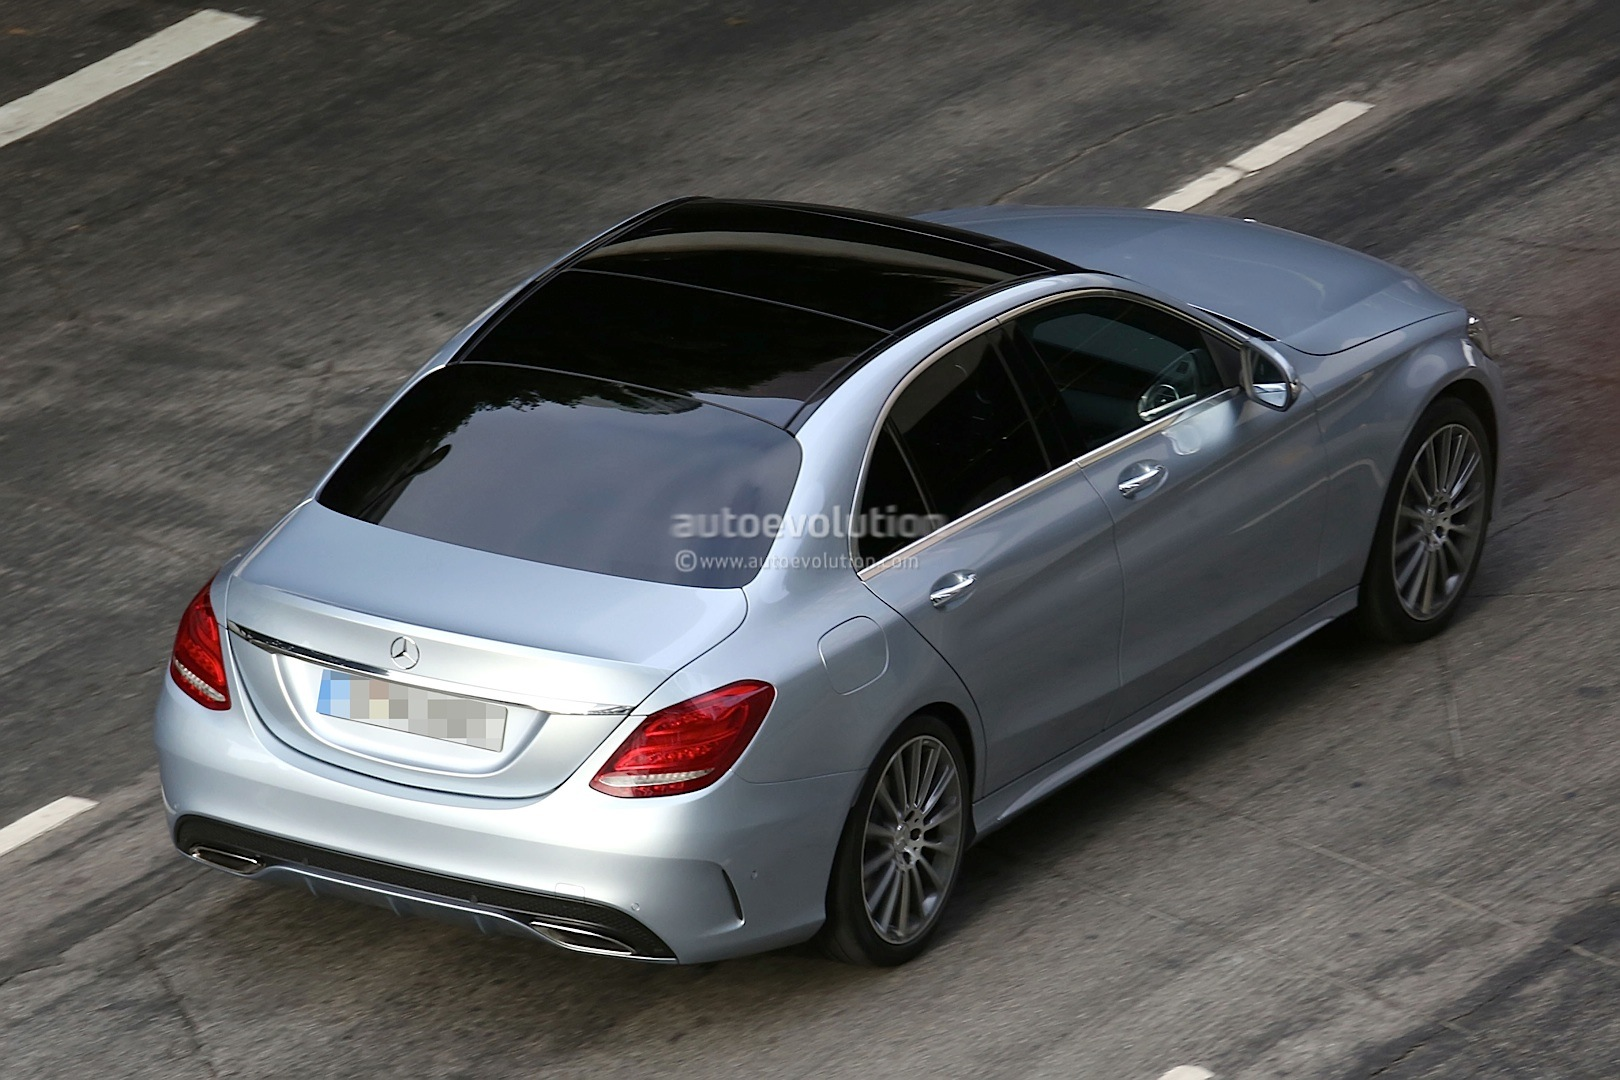 2015 mercedes benz c 220 bluetec w205 vs 2014 c 220 cdi for New mercedes benz s class 2015